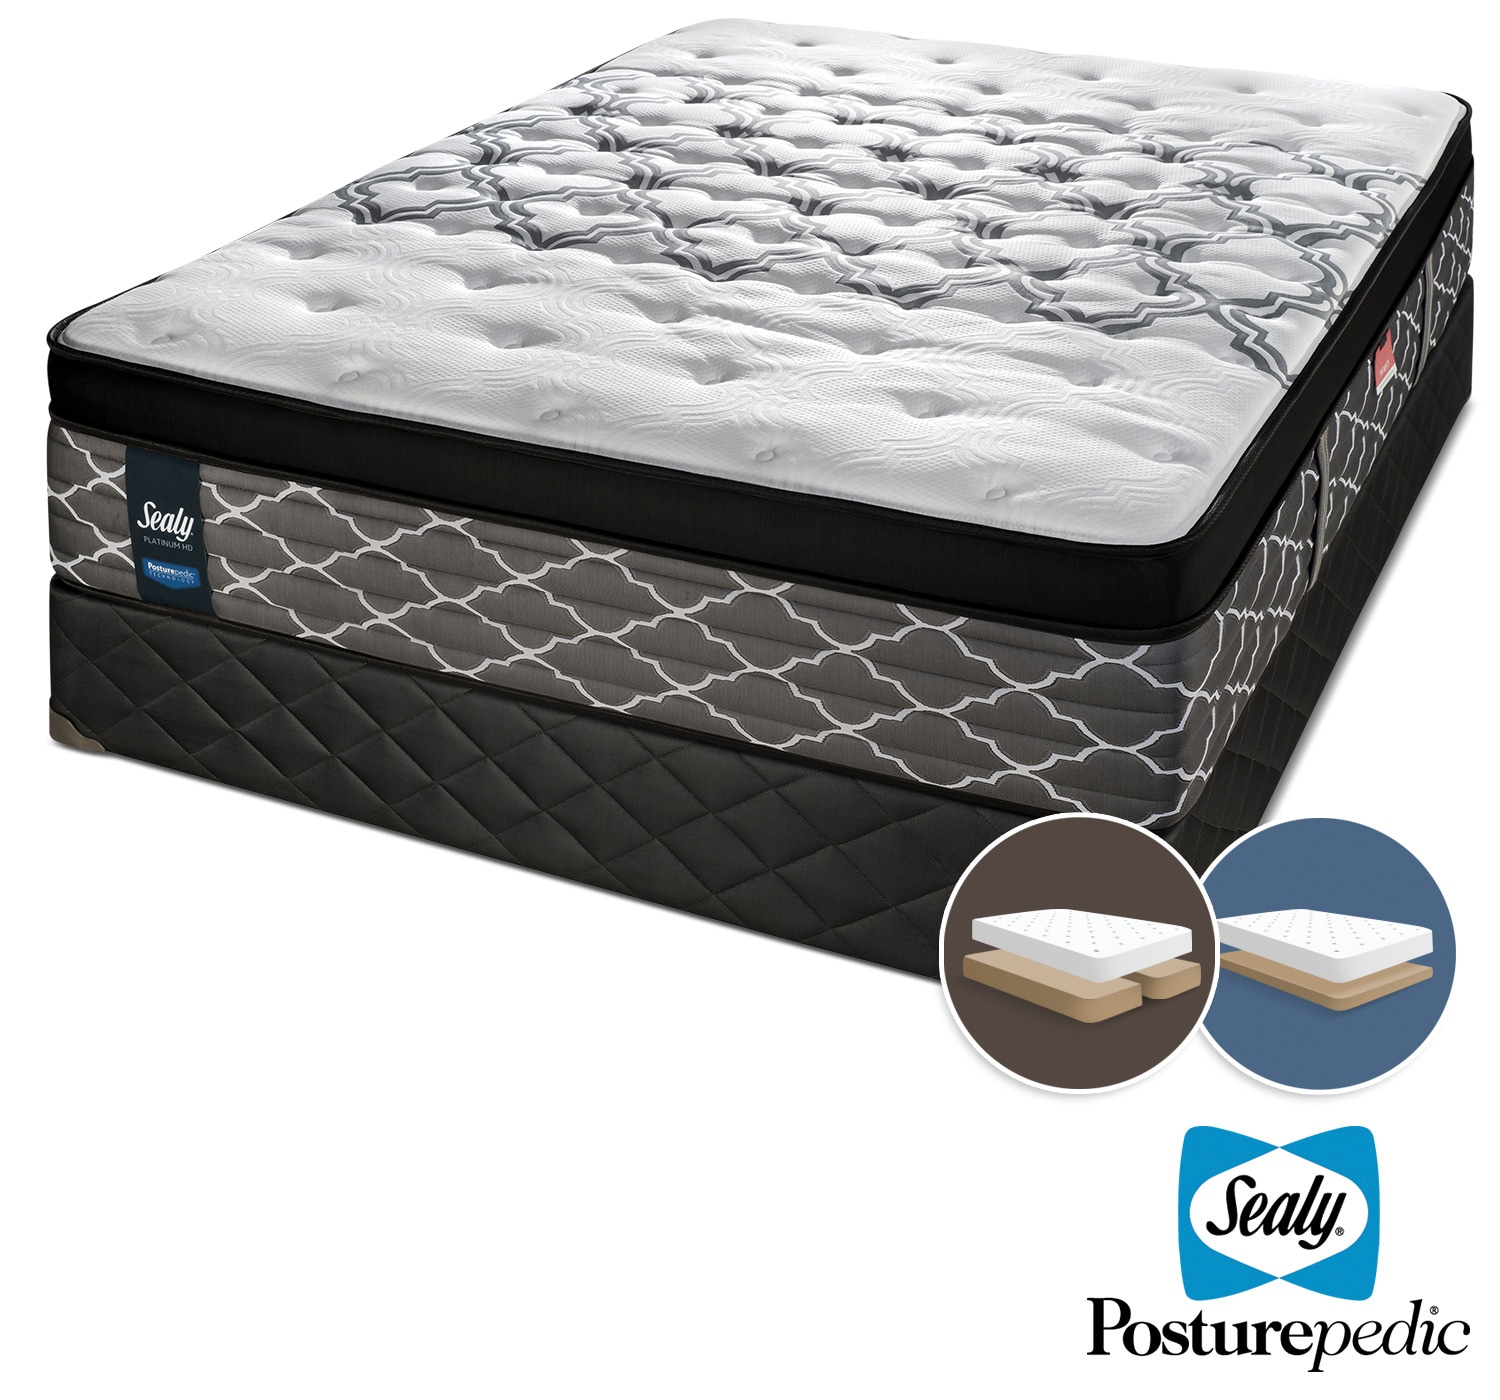 Sealy Dreamy Night Hybrid Firm King Mattress and Split Low-Profile Boxspring Set